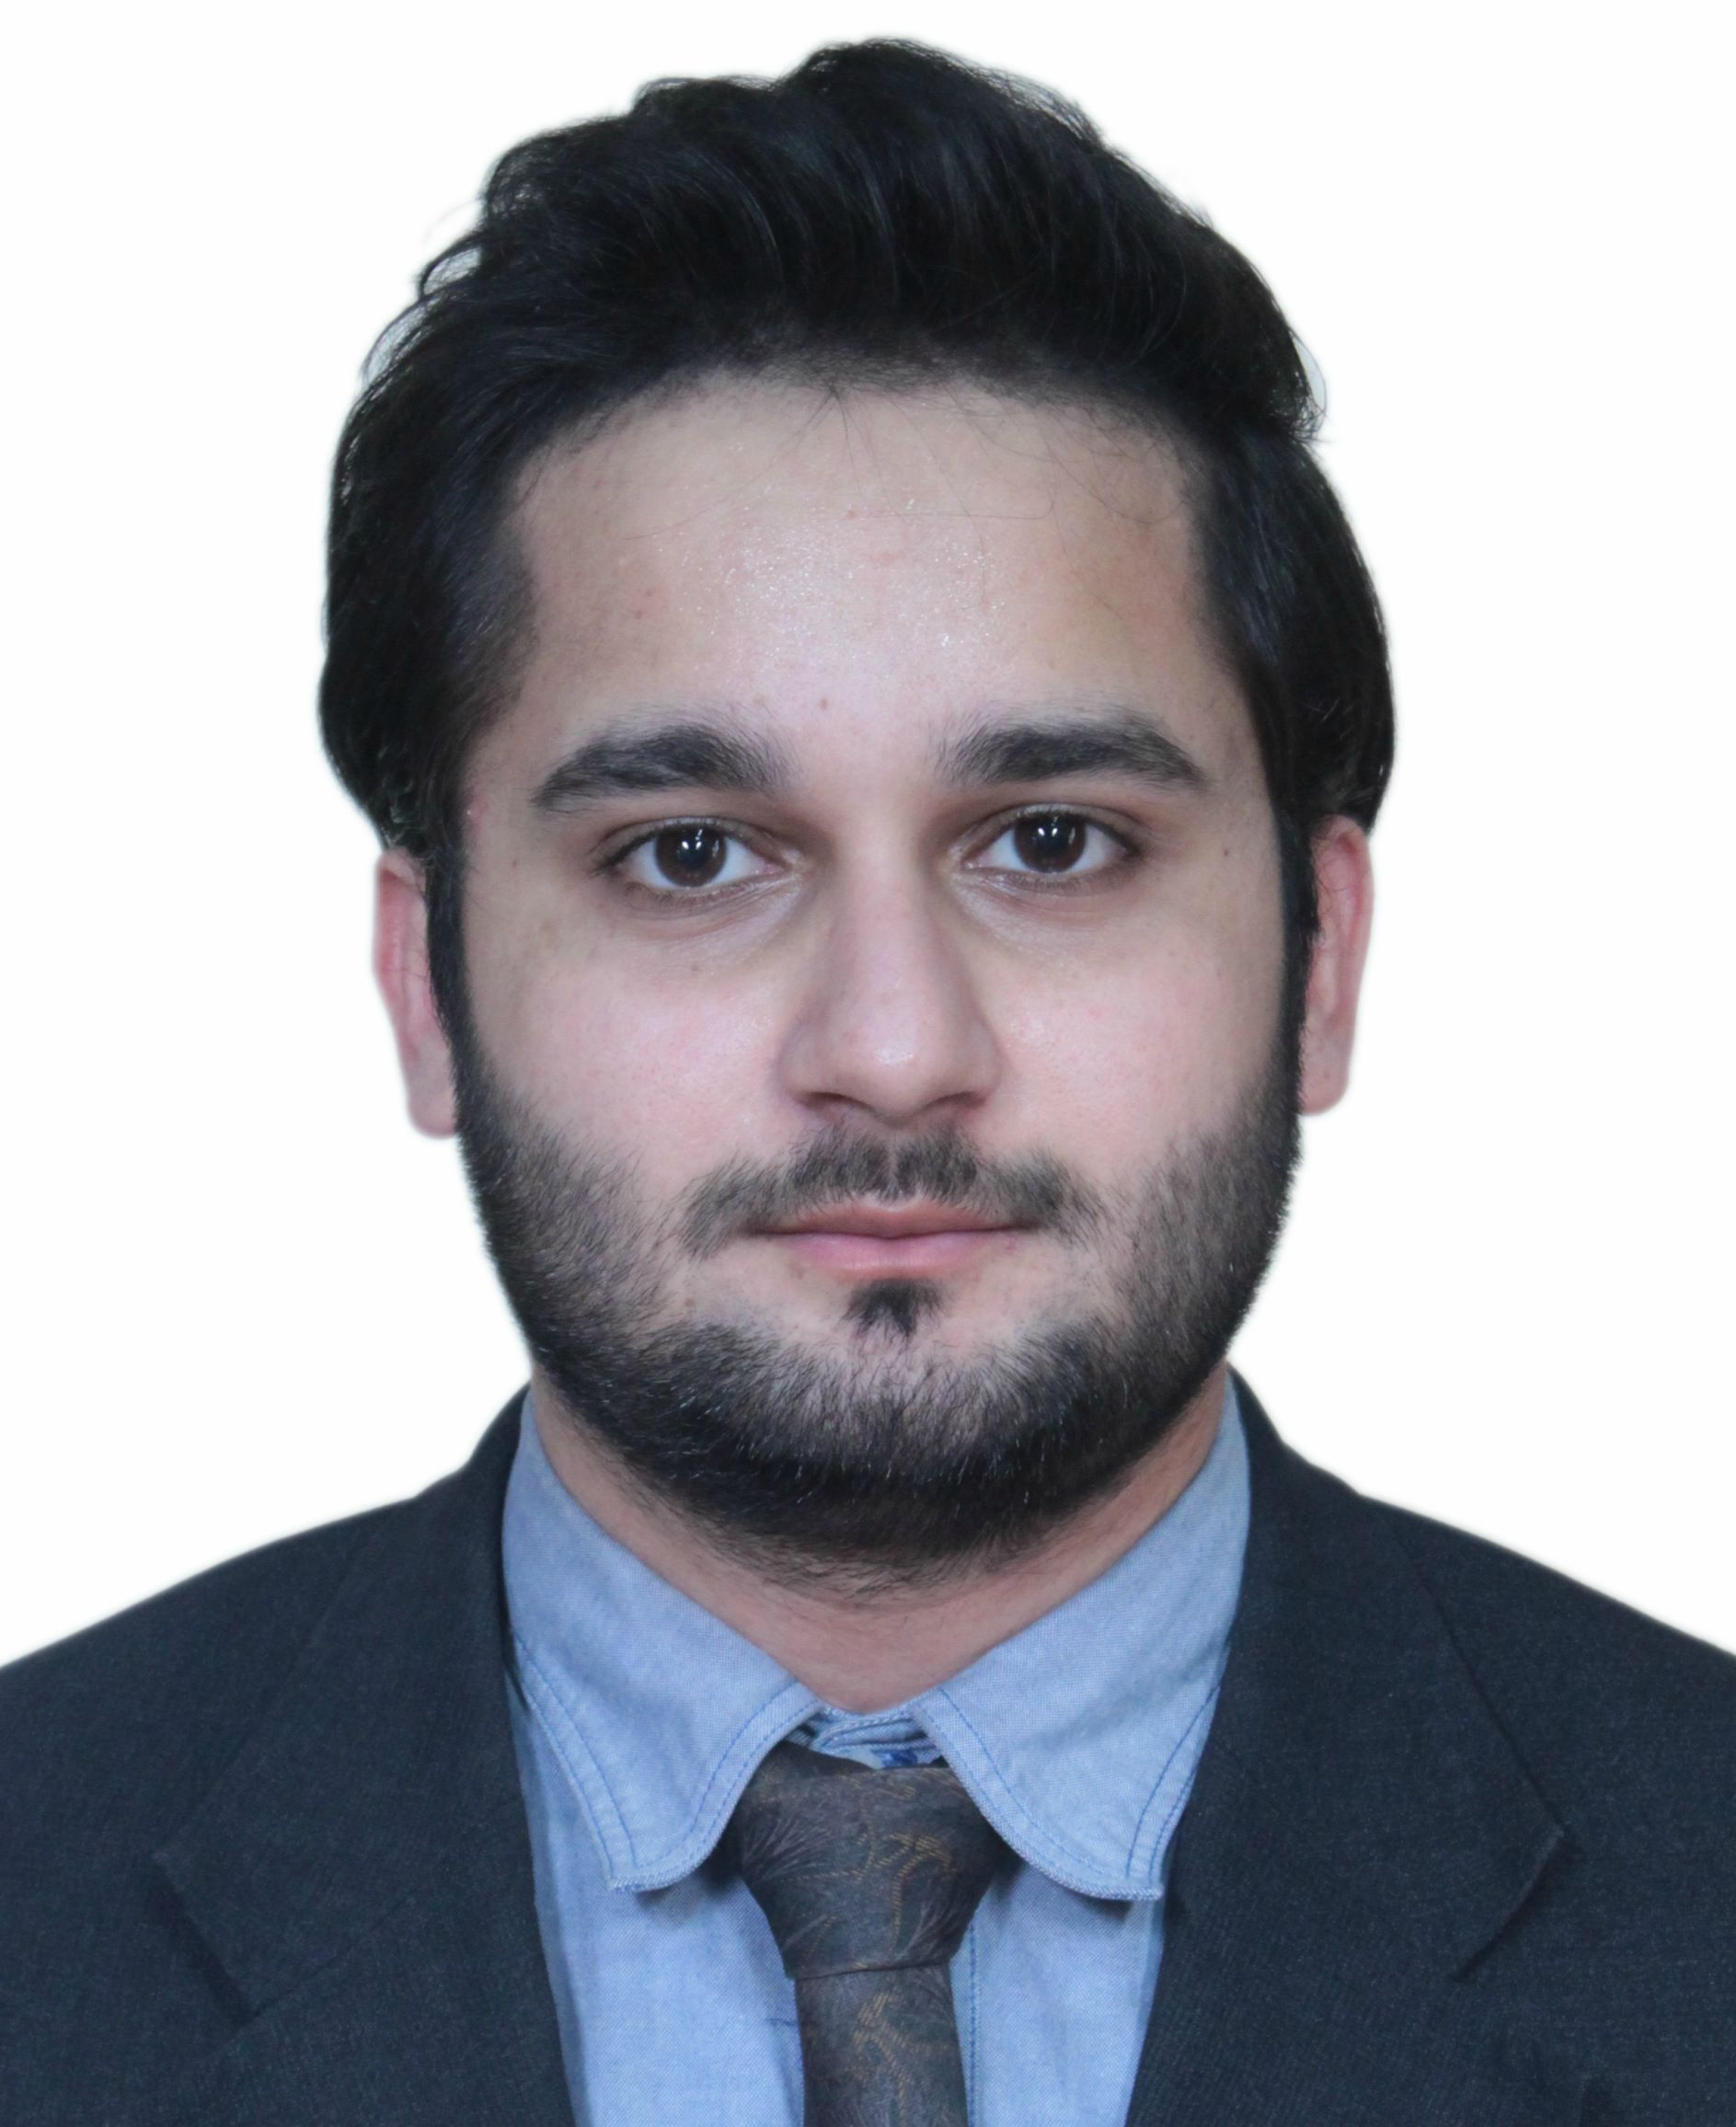 Profile picture of Syed M Saim